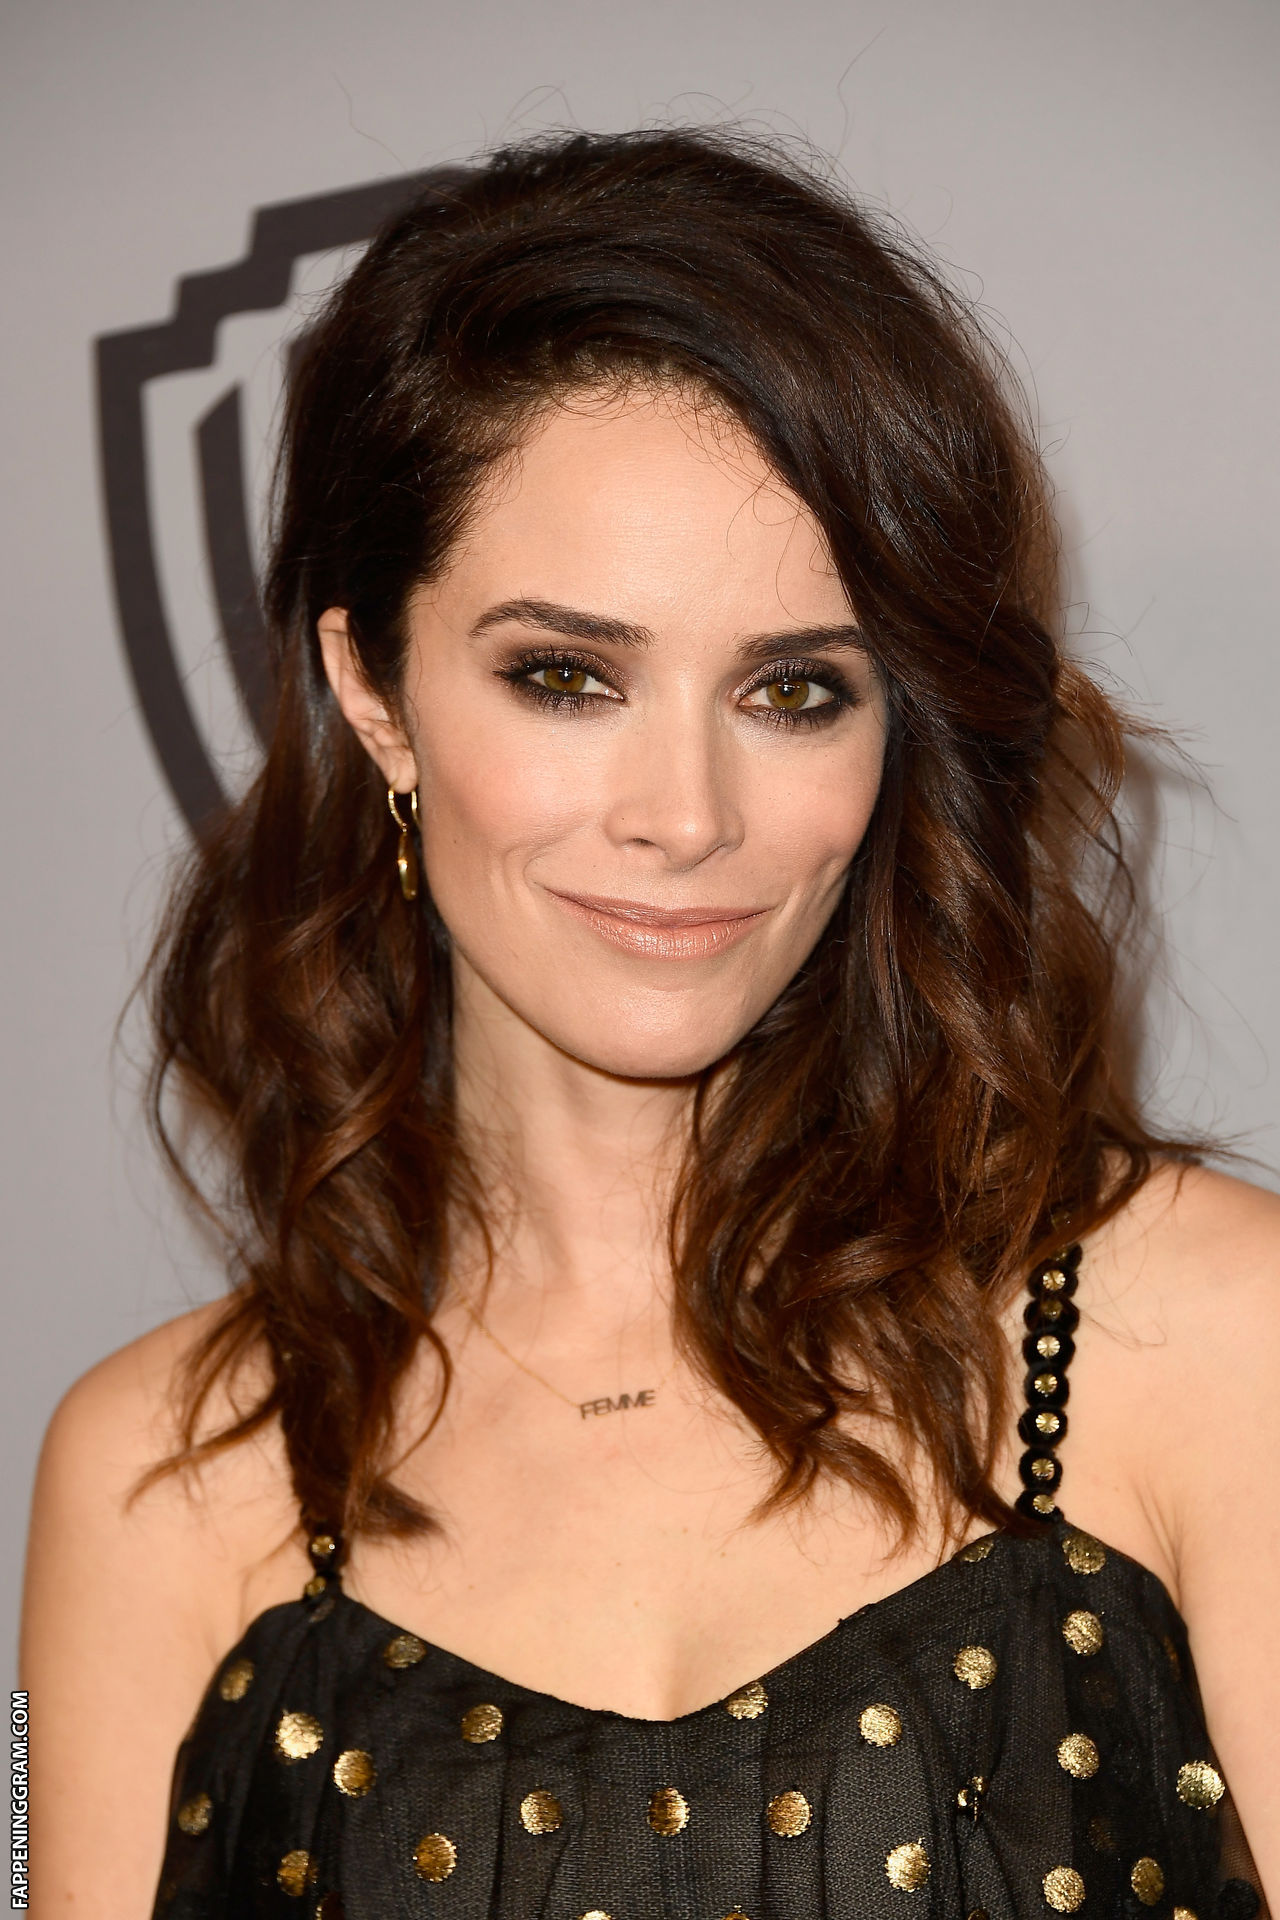 Abigail Spencer Nude The Fappening - Page 2 - FappeningGram